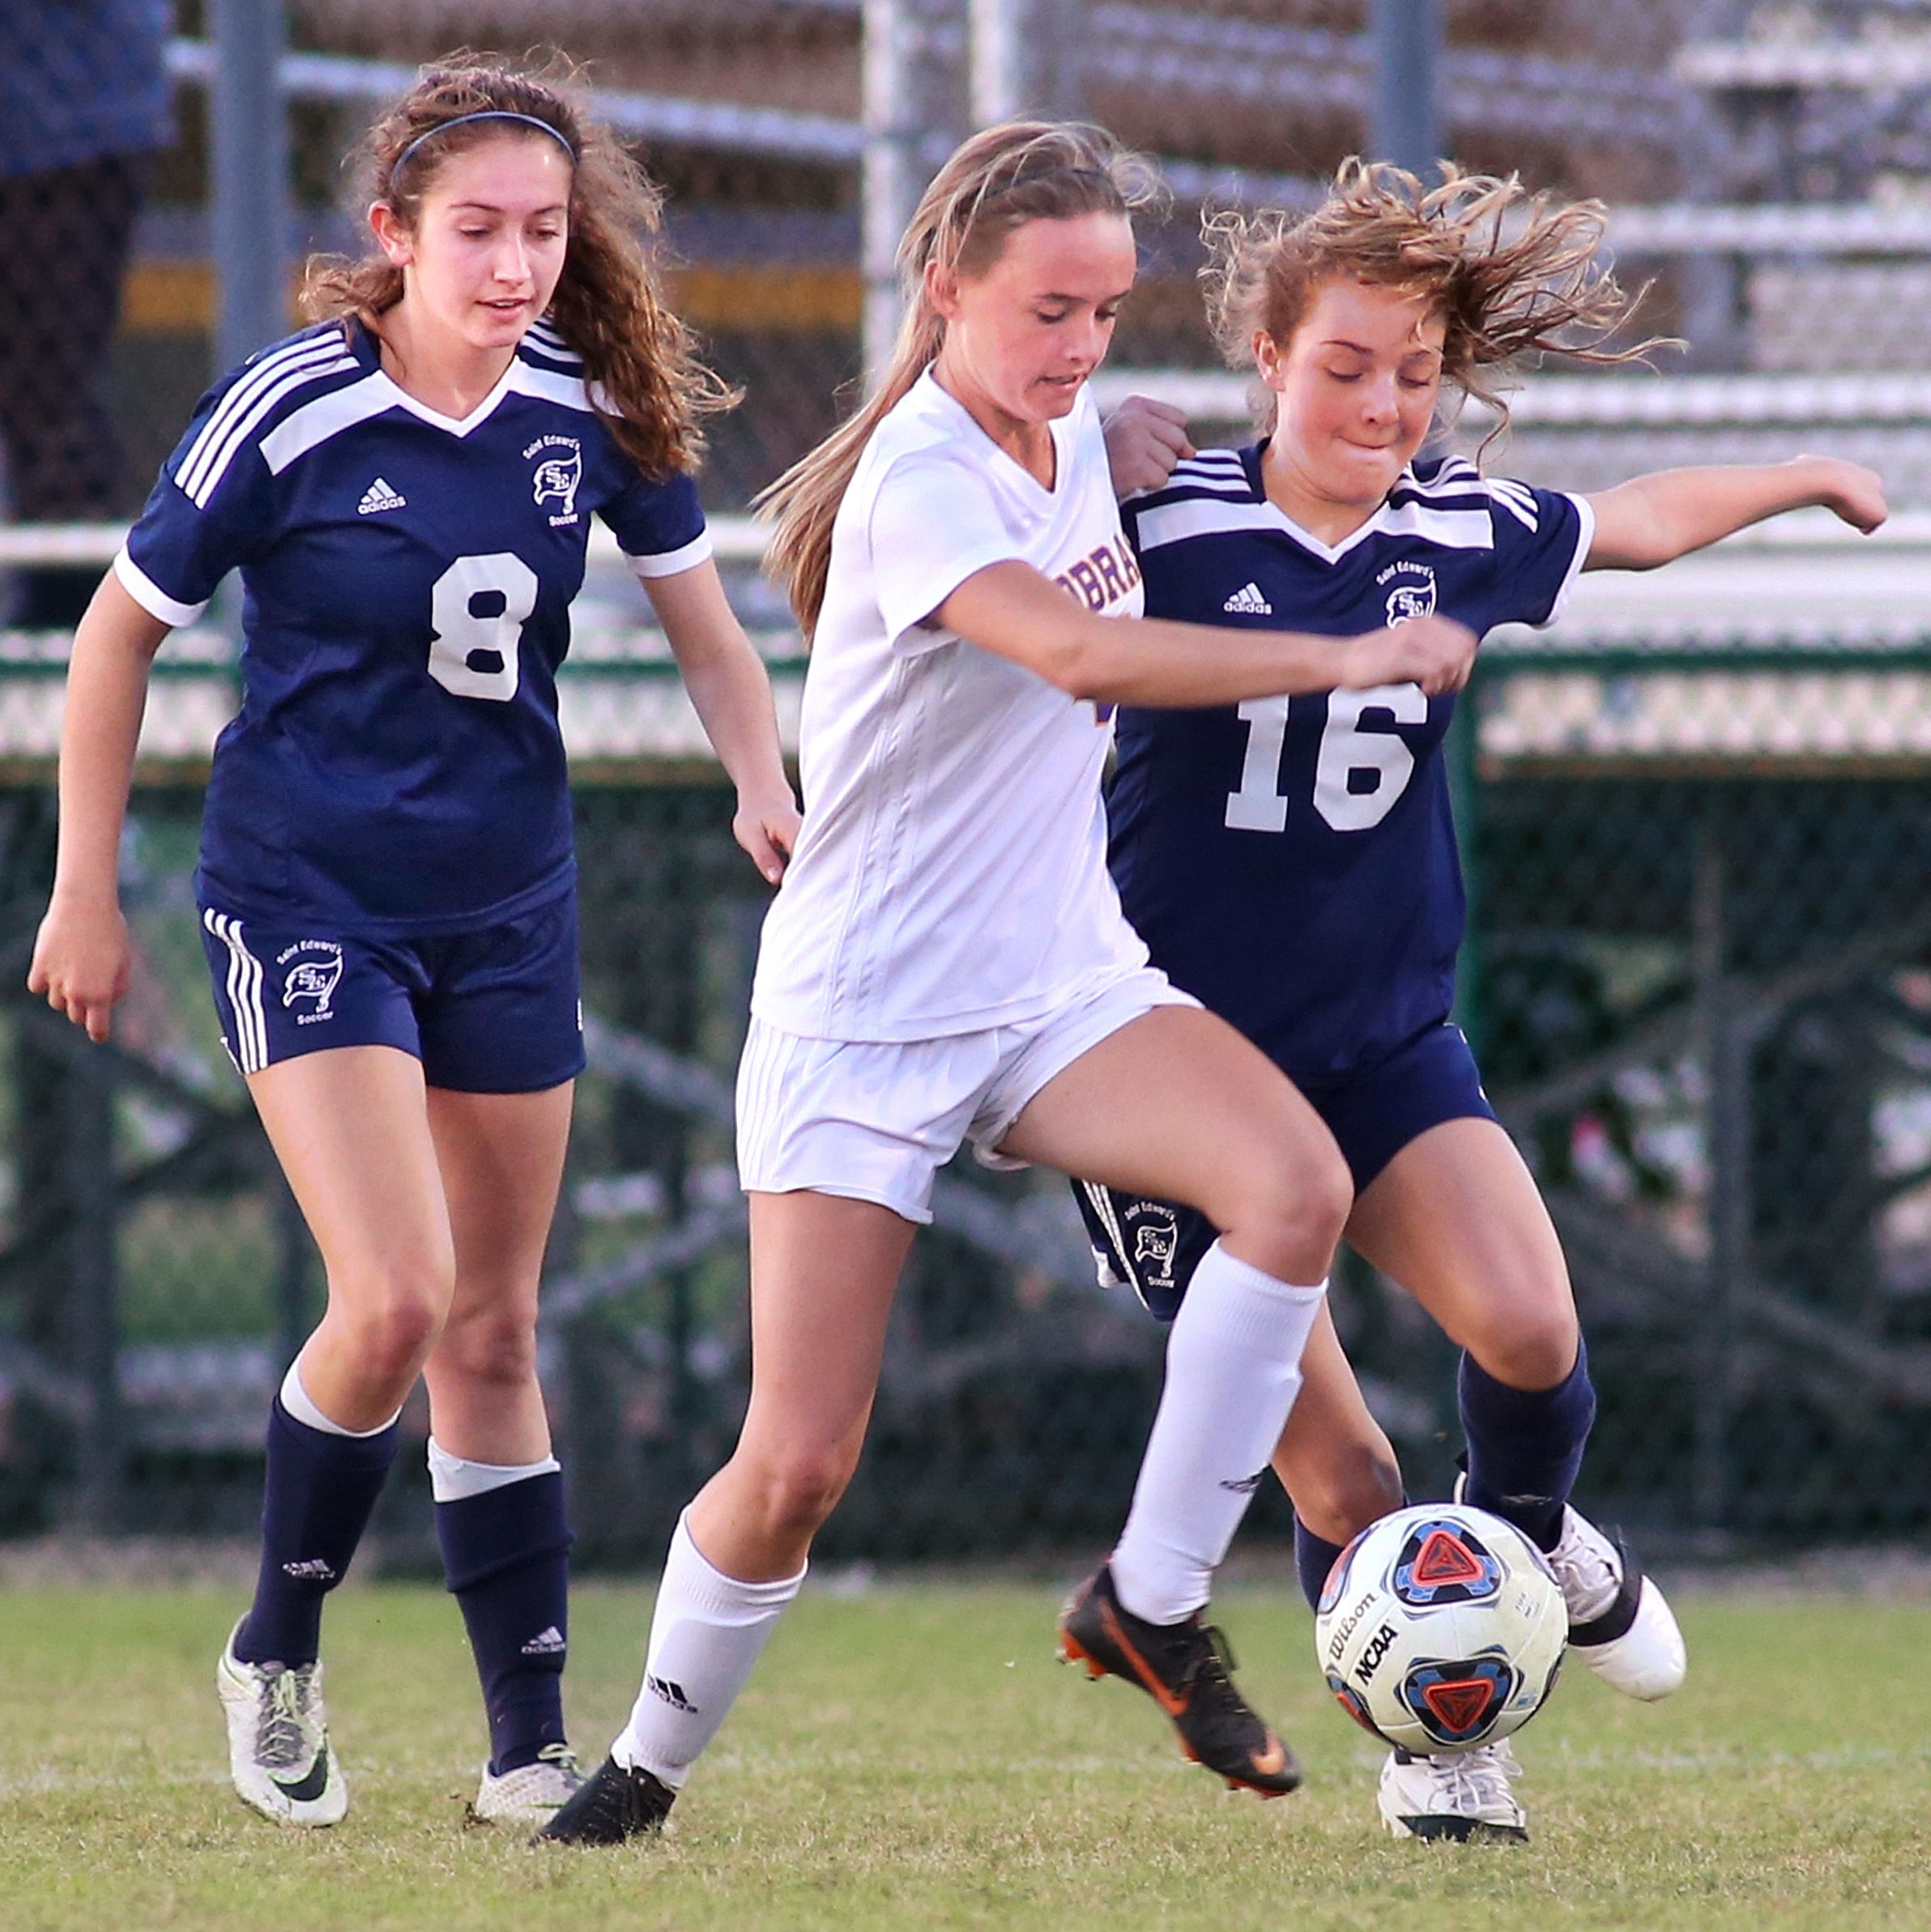 St Ed's Ft Pierce Central Girls Soccer